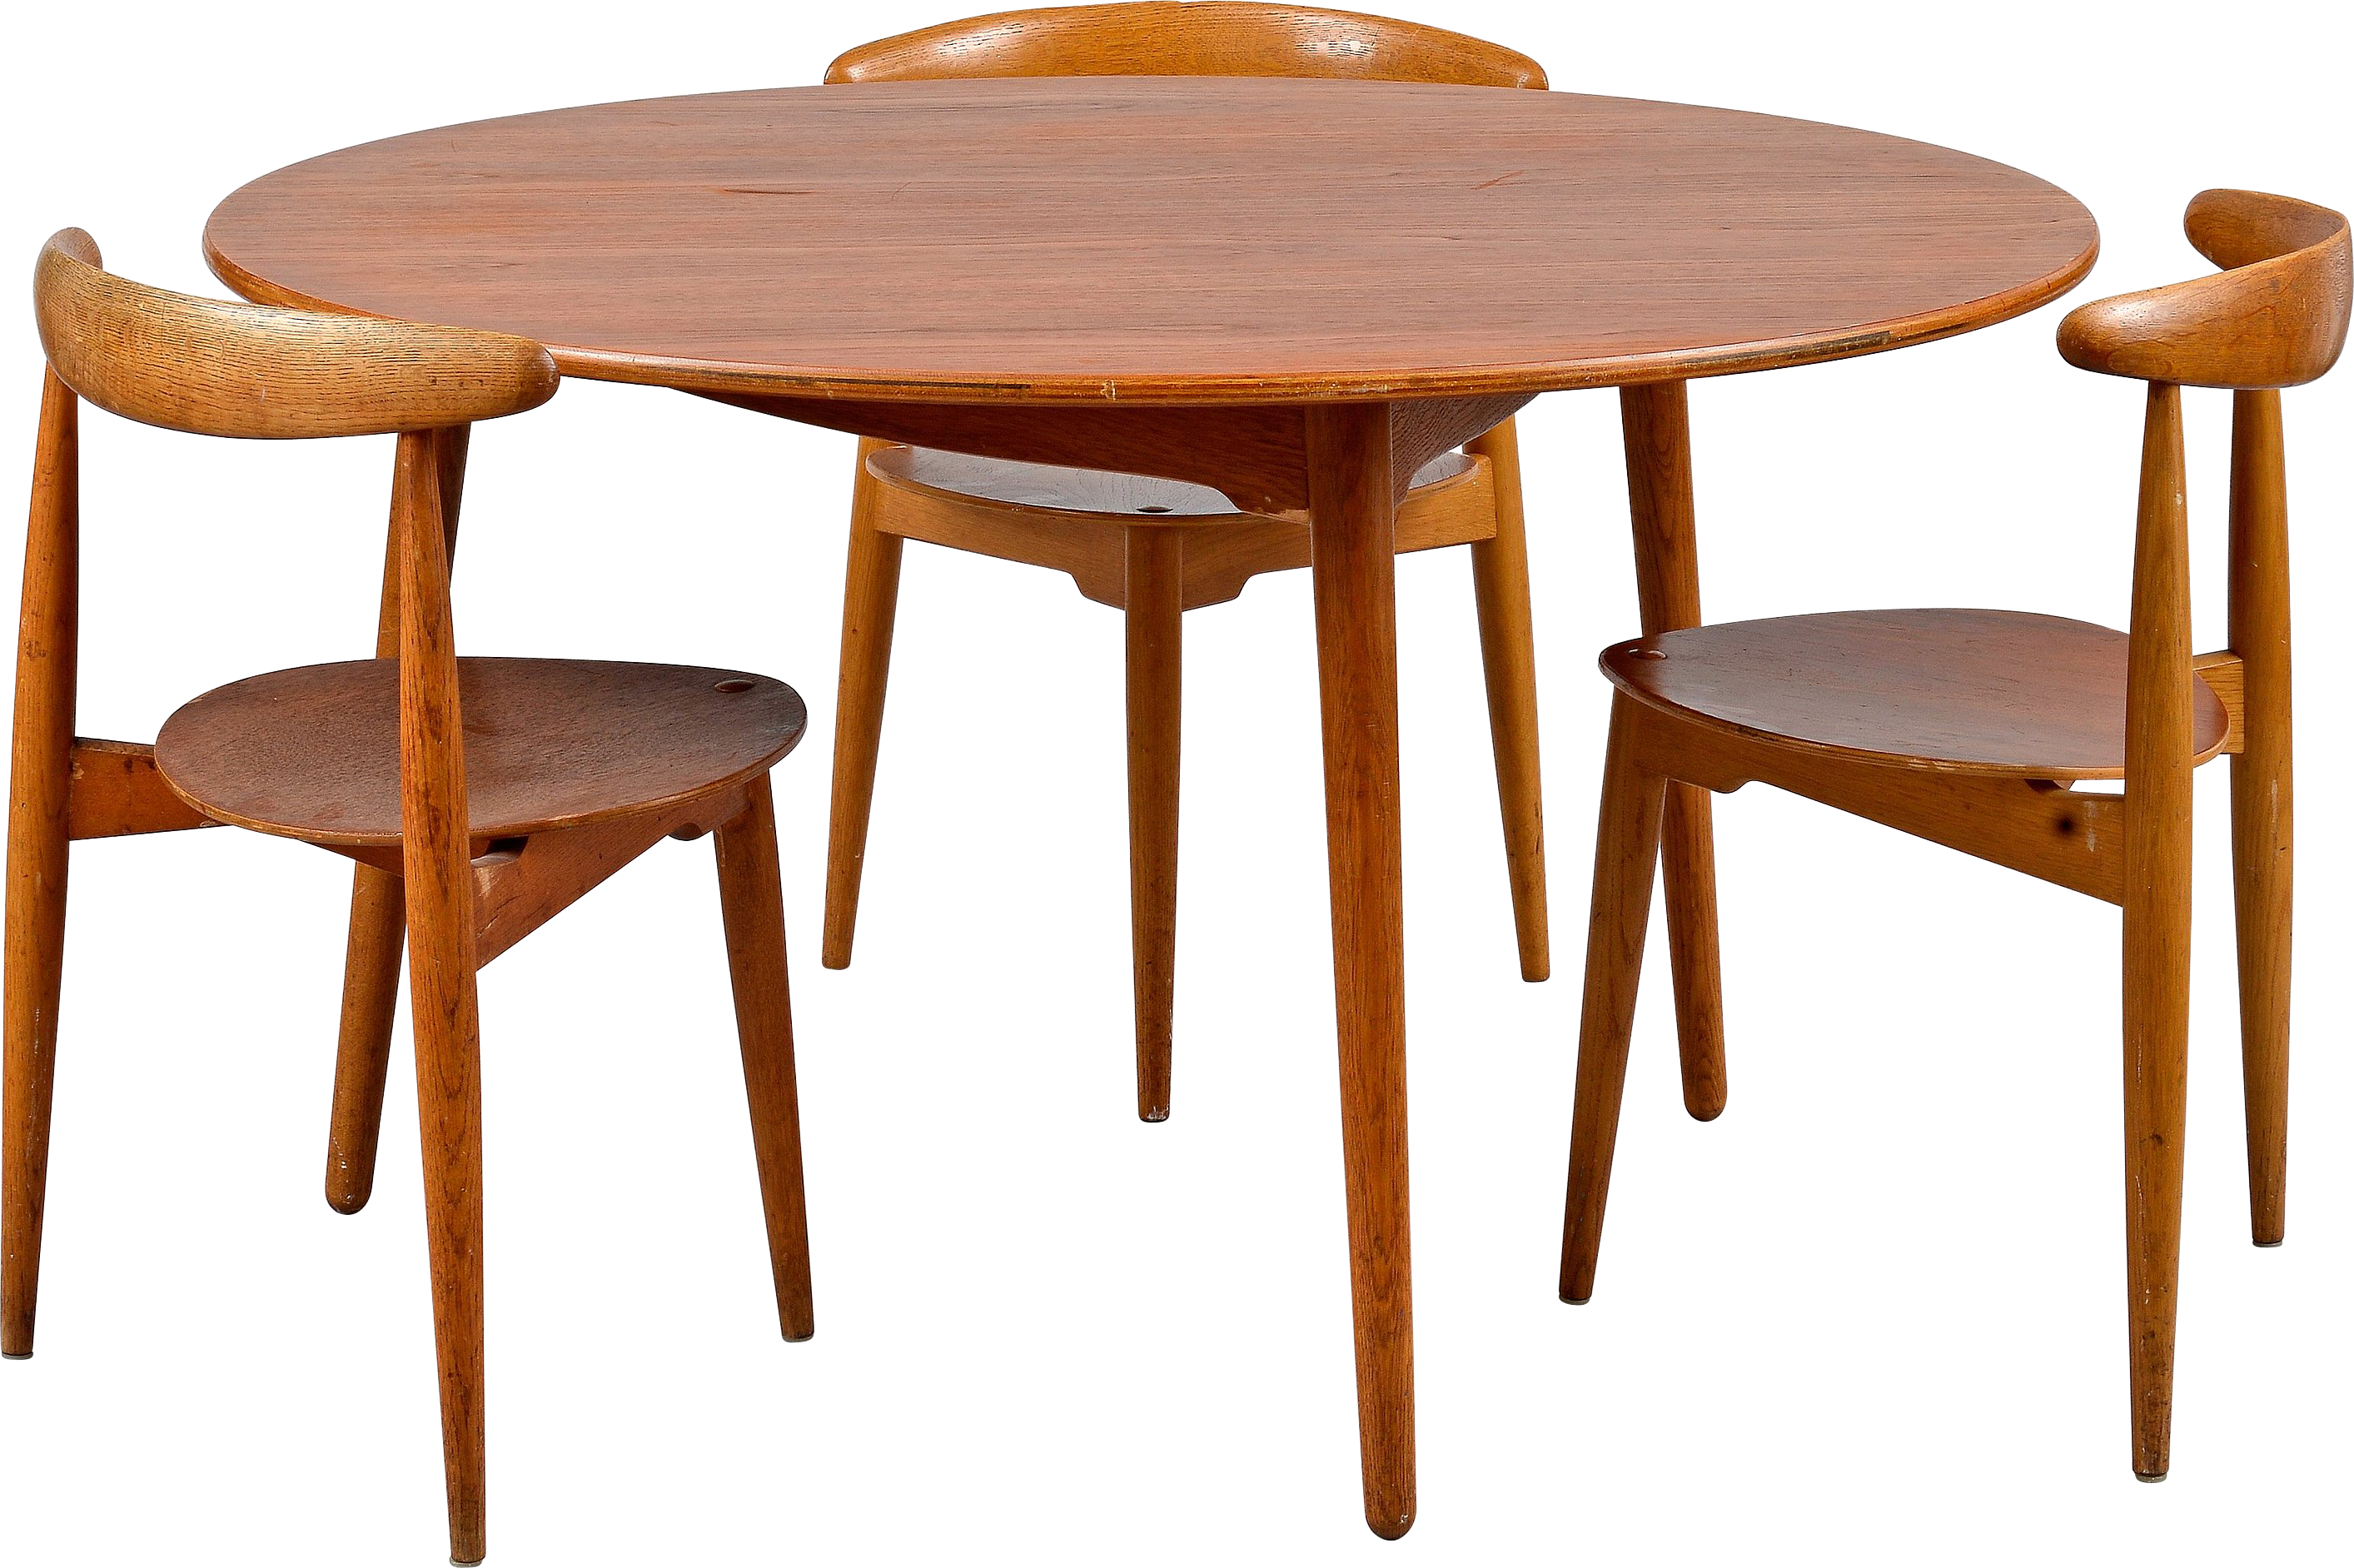 Table png image free. Furniture clipart dining area